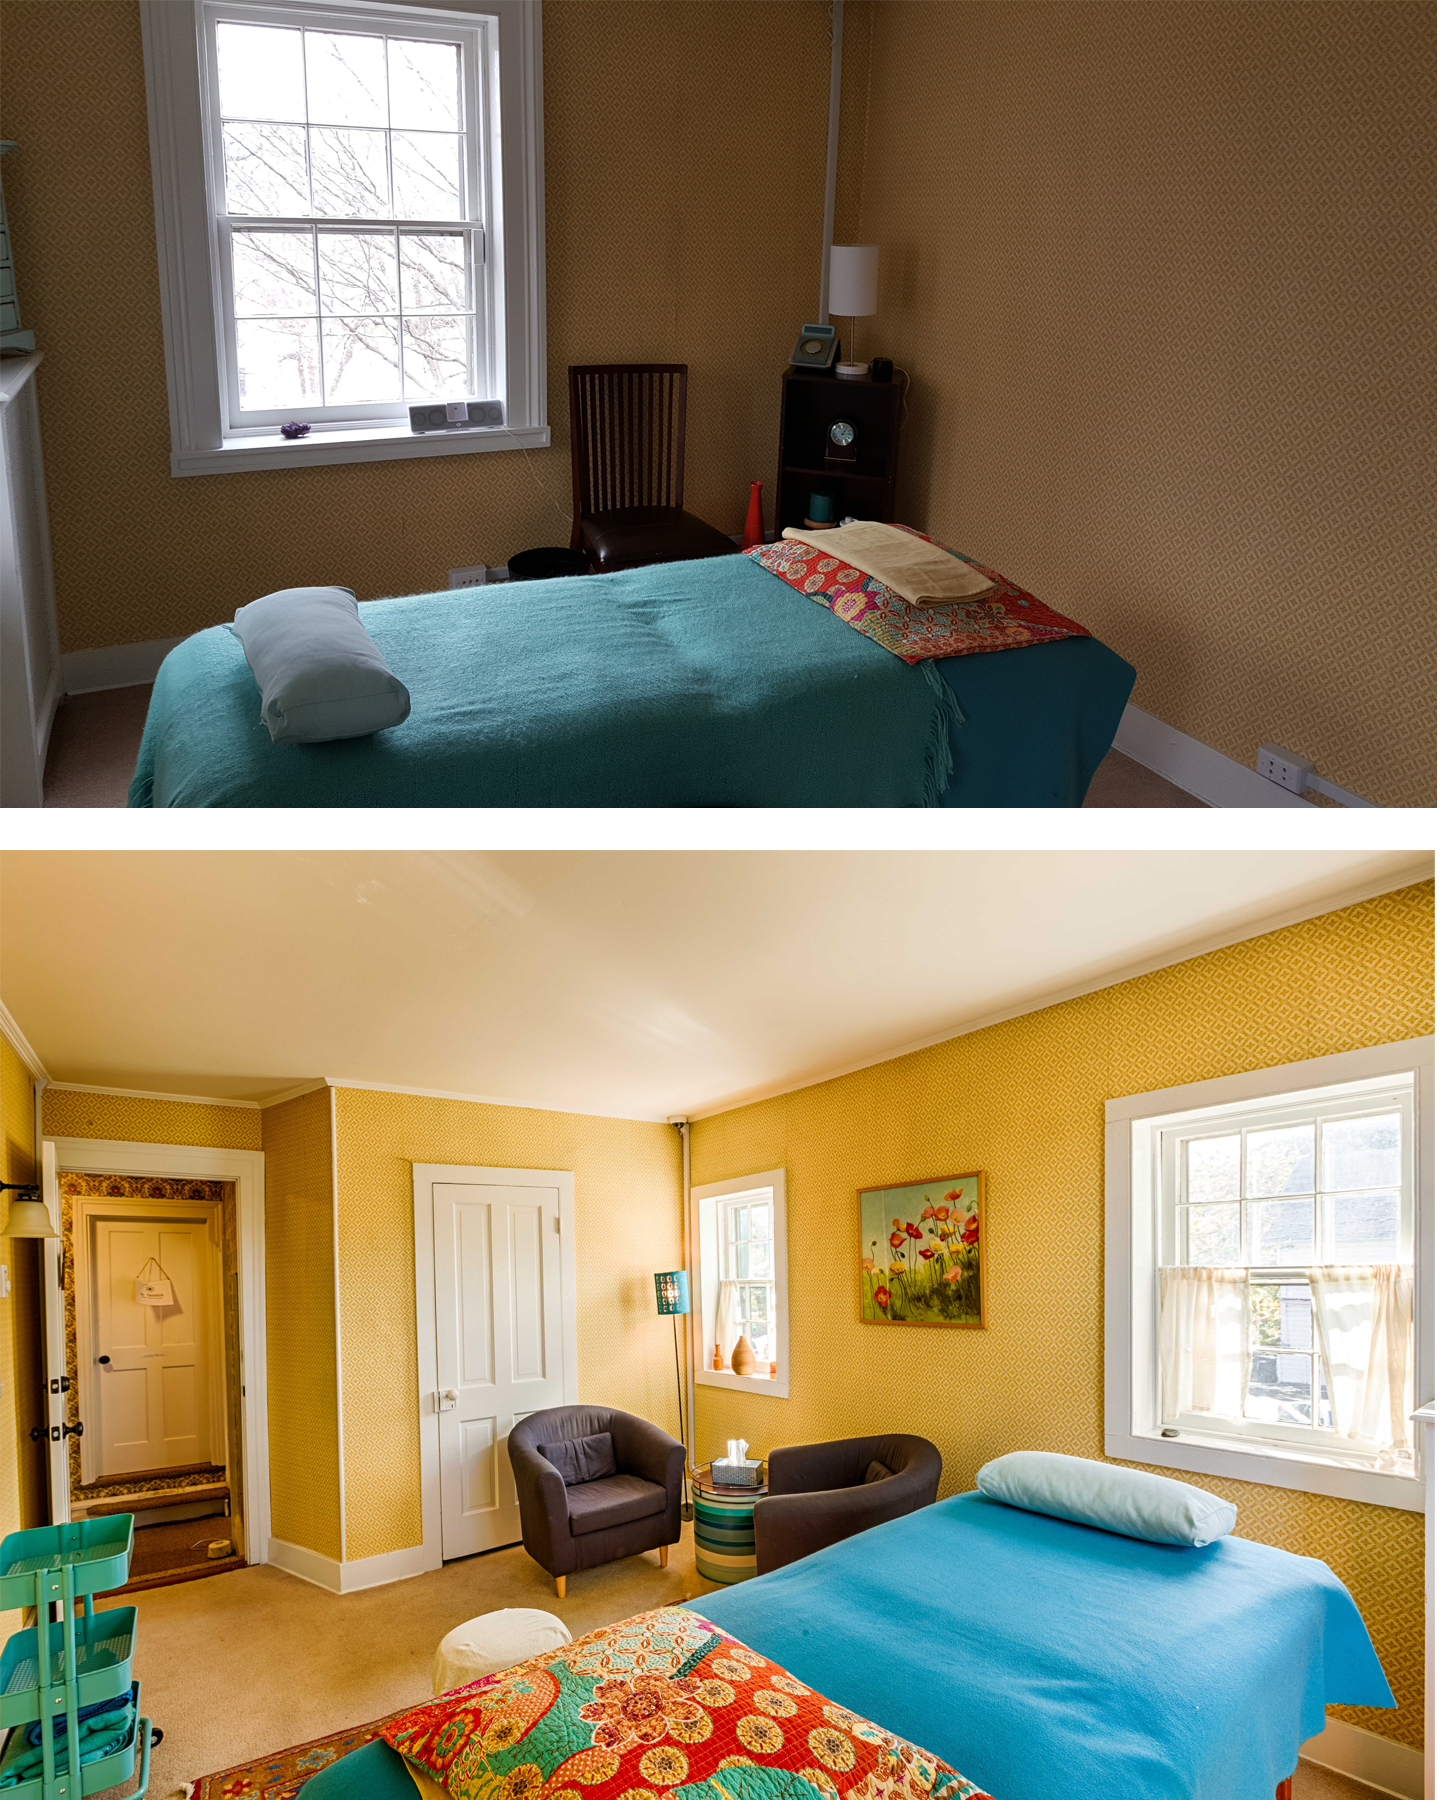 Client Photo Side by Side Comparison: Interior/Real Estate Photo